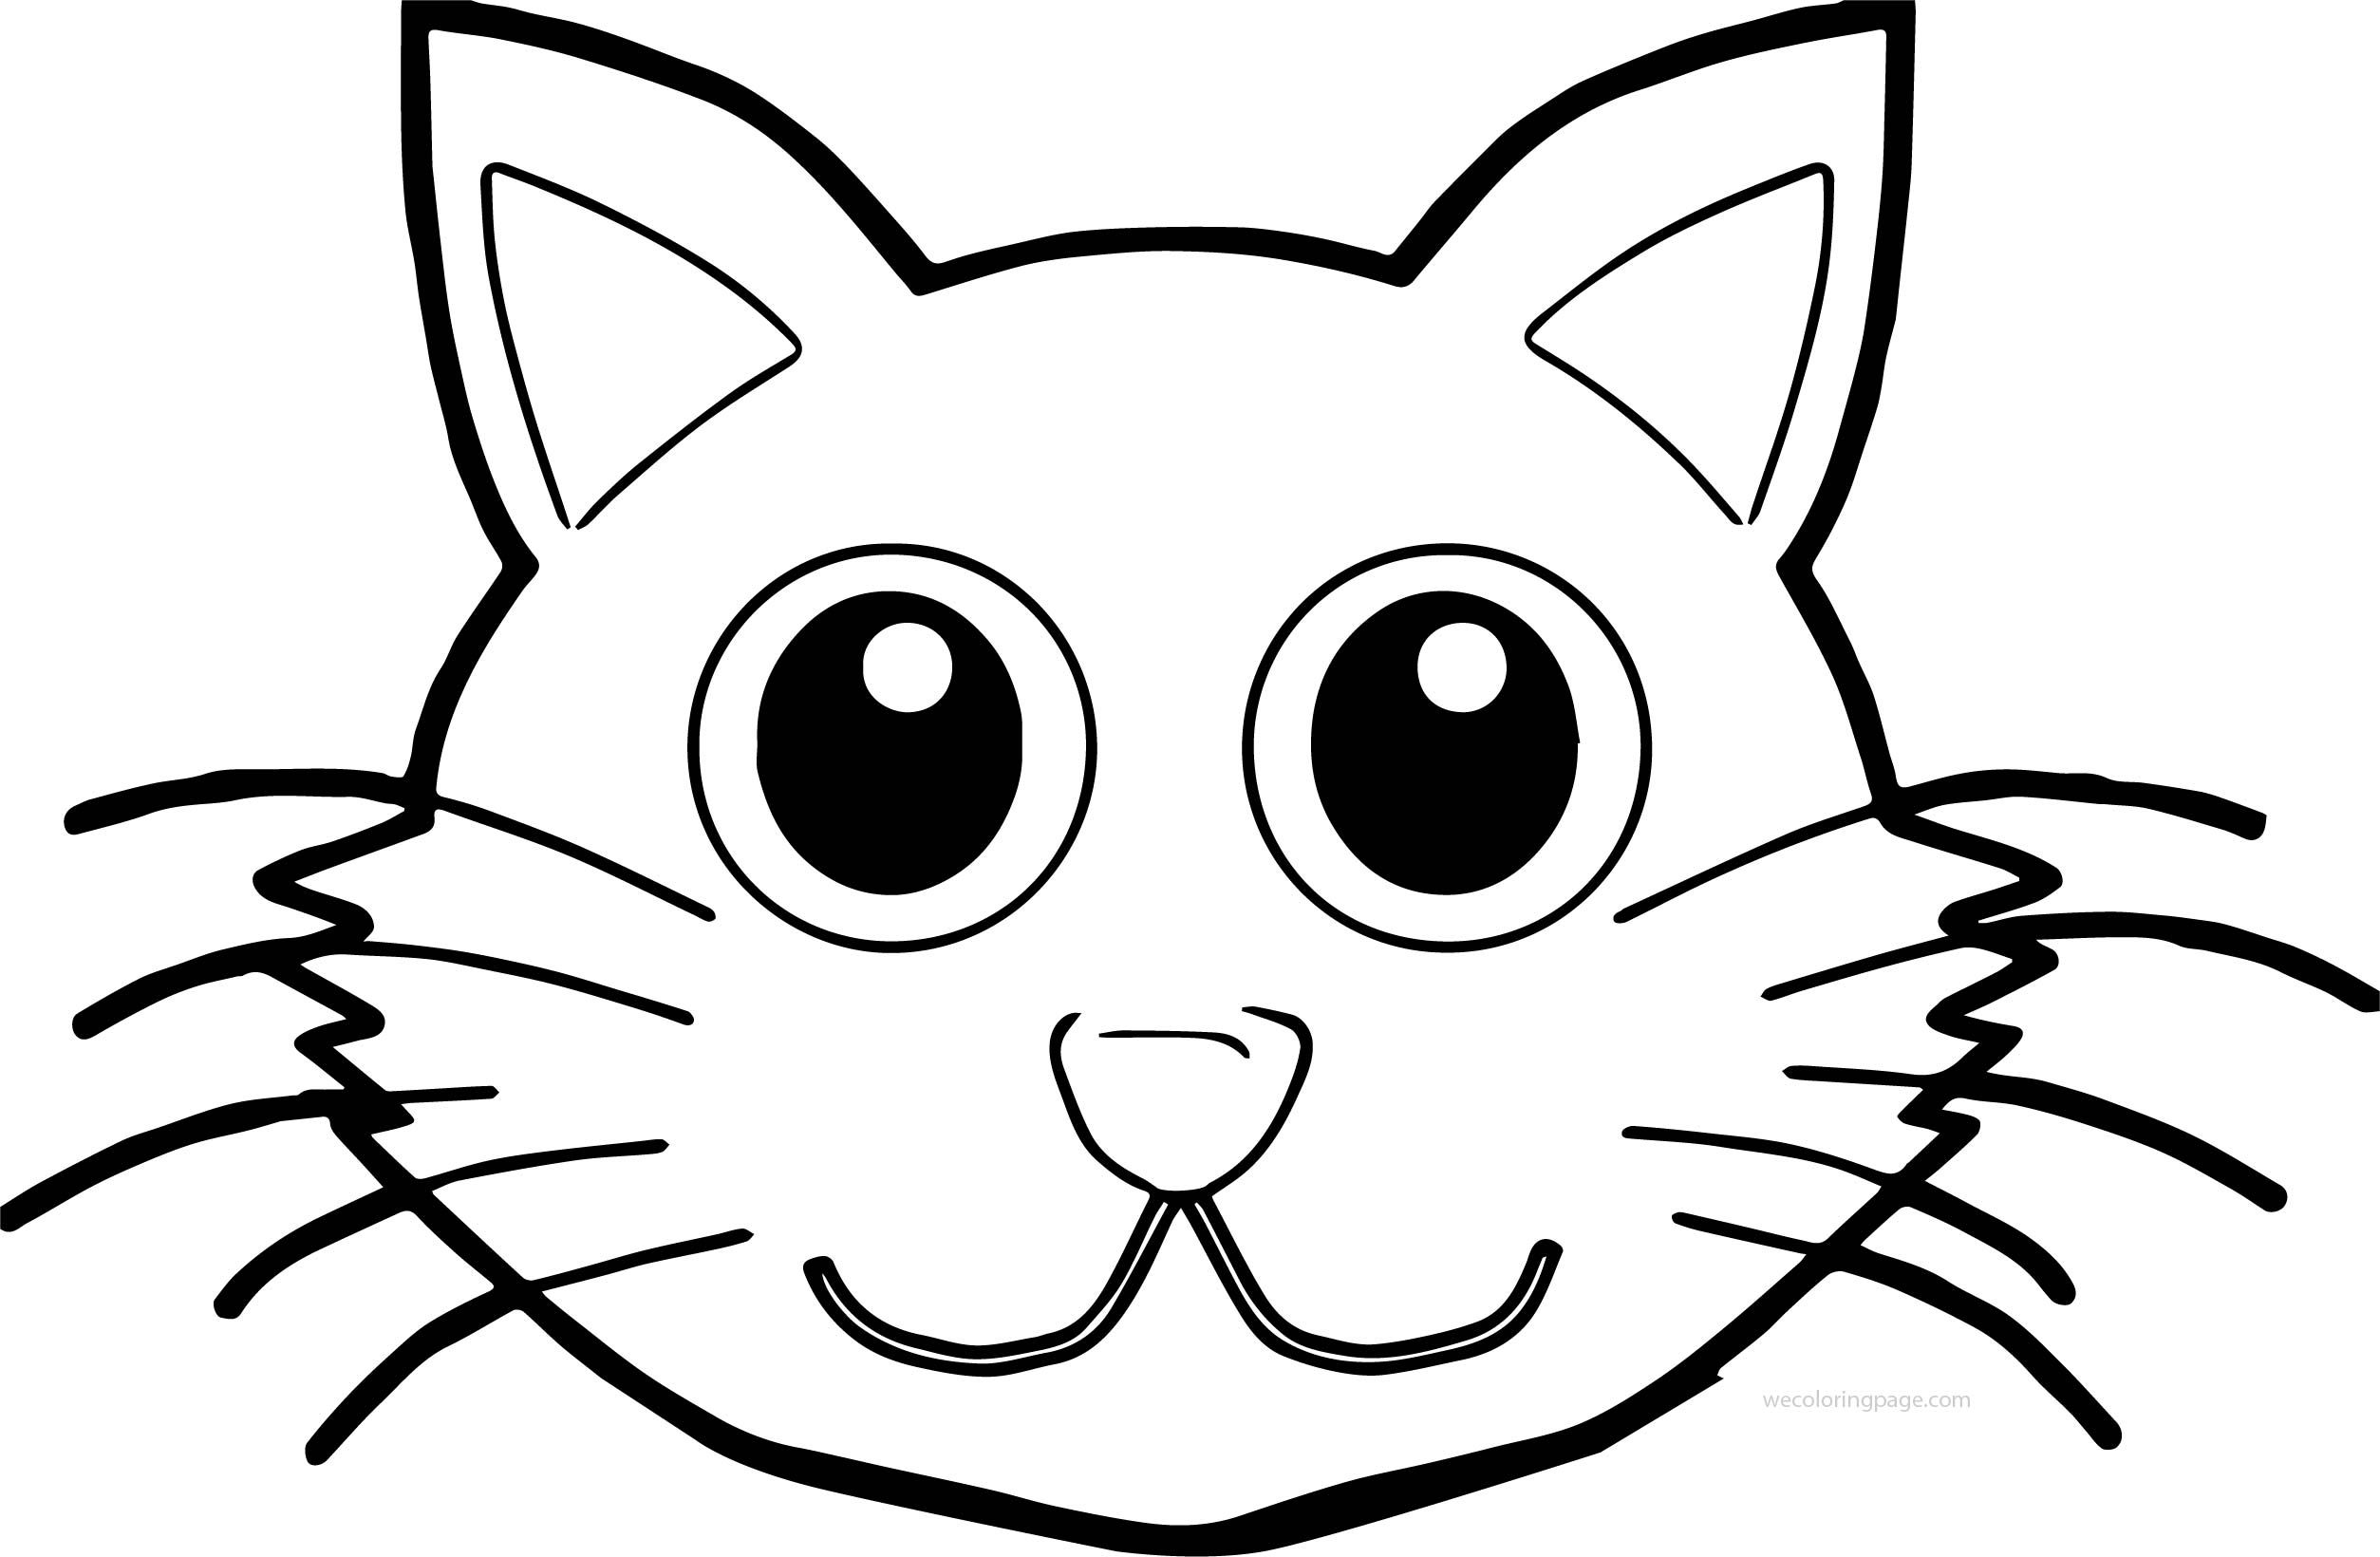 14+ Cat in the hat head coloring page free download